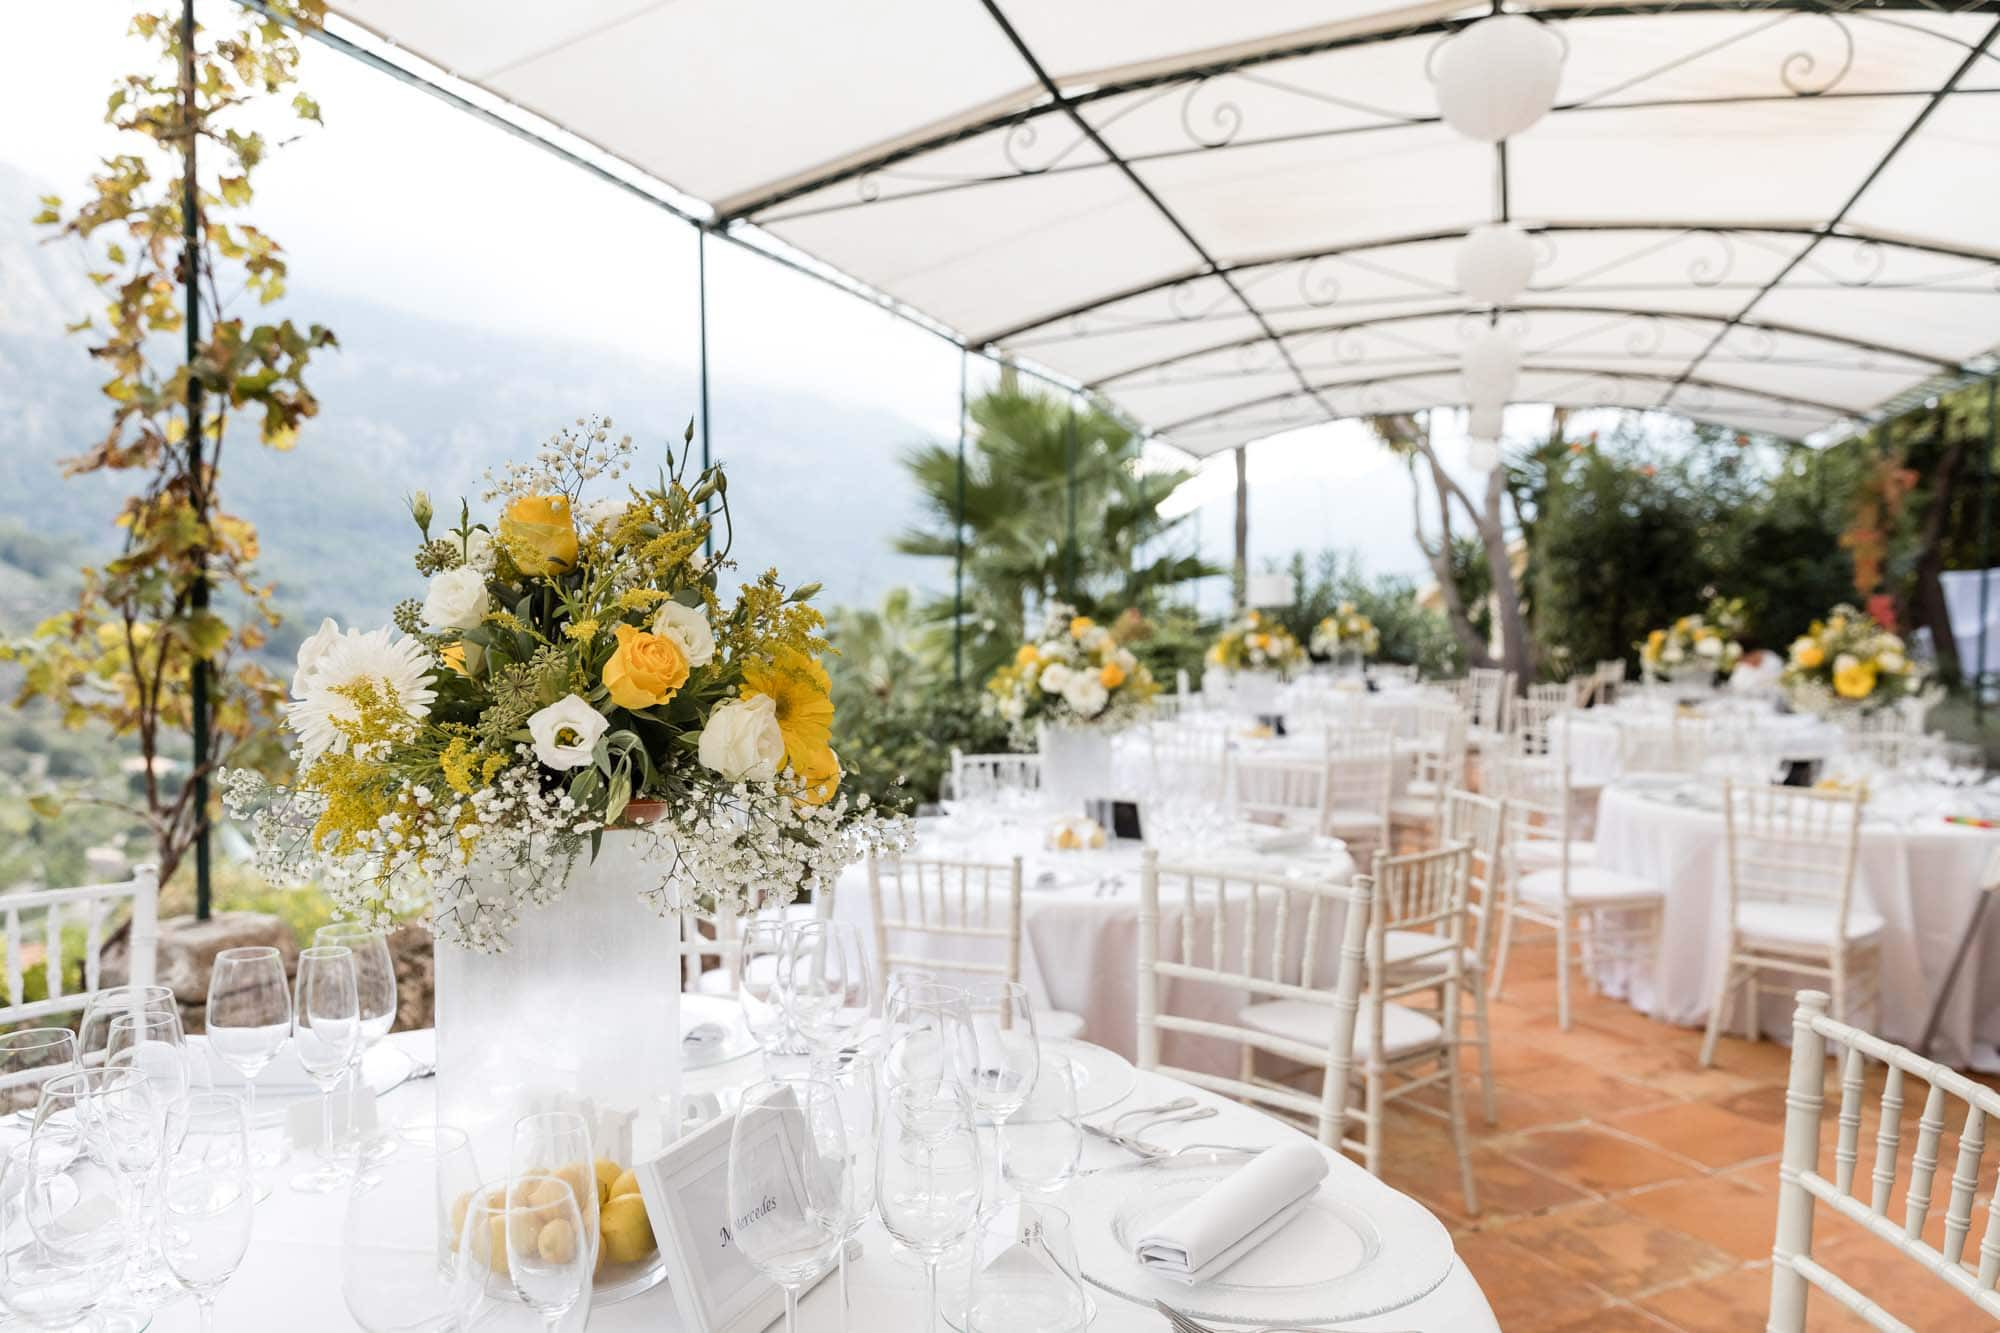 The beautiful terrace at the boutique hotel Can Verdera waiting for the wedding guests